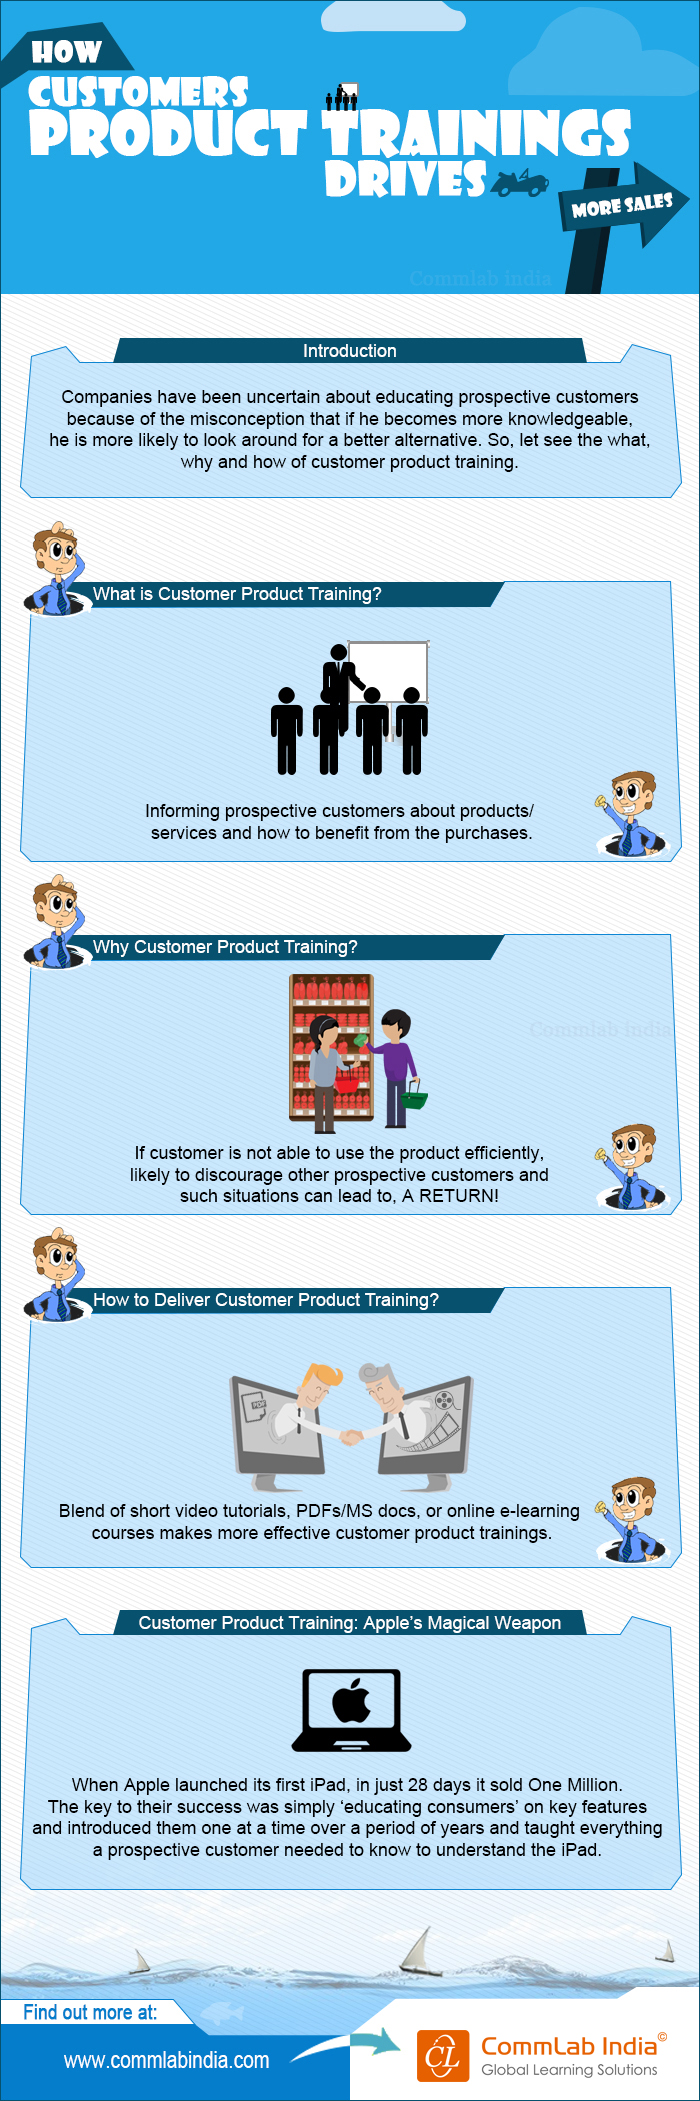 How Customer Product Training Drives More Sales [Infographic]